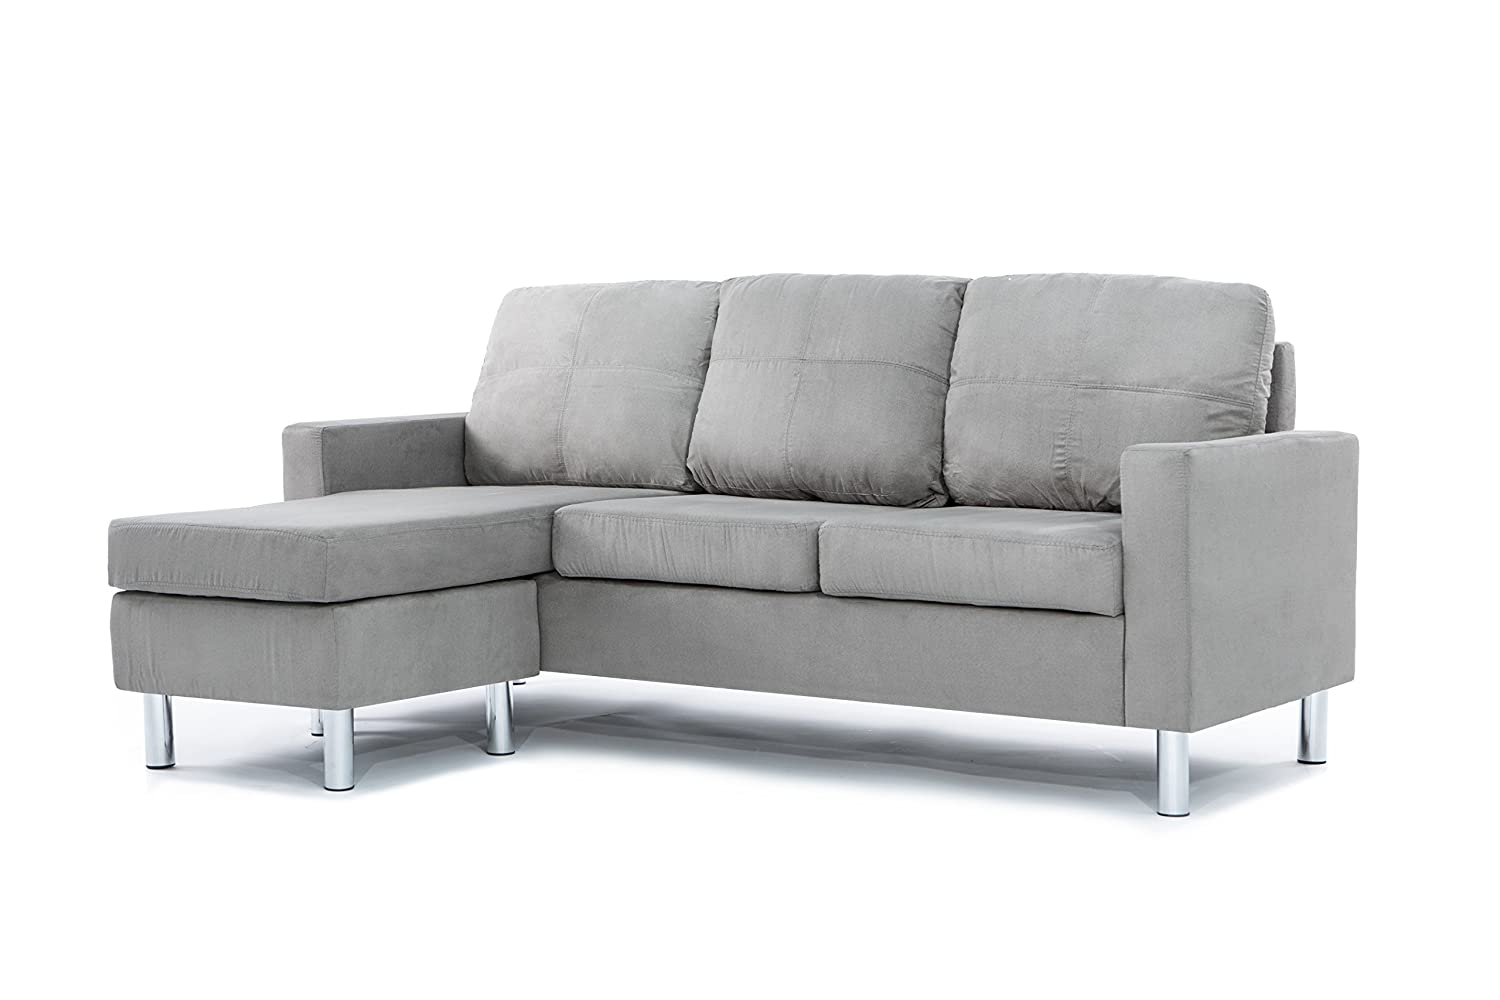 Divano Roma Furniture Modern Soft Brush Microfiber Sectional Sofa - Small Space Configurable Couch (Grey)